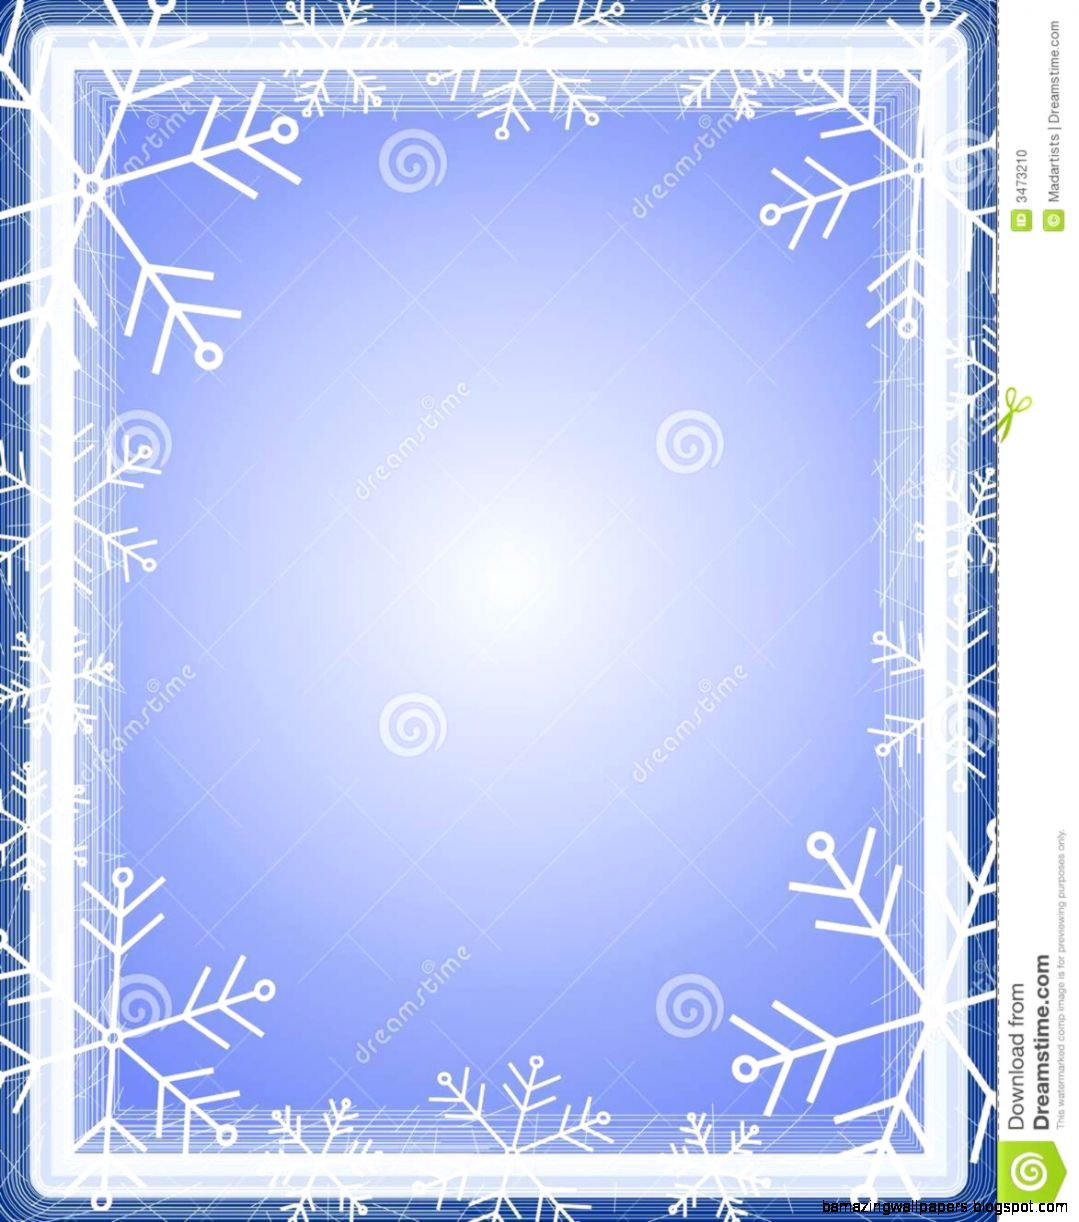 Snowflake Border Frame Blue Stock Photo   Image 3473210